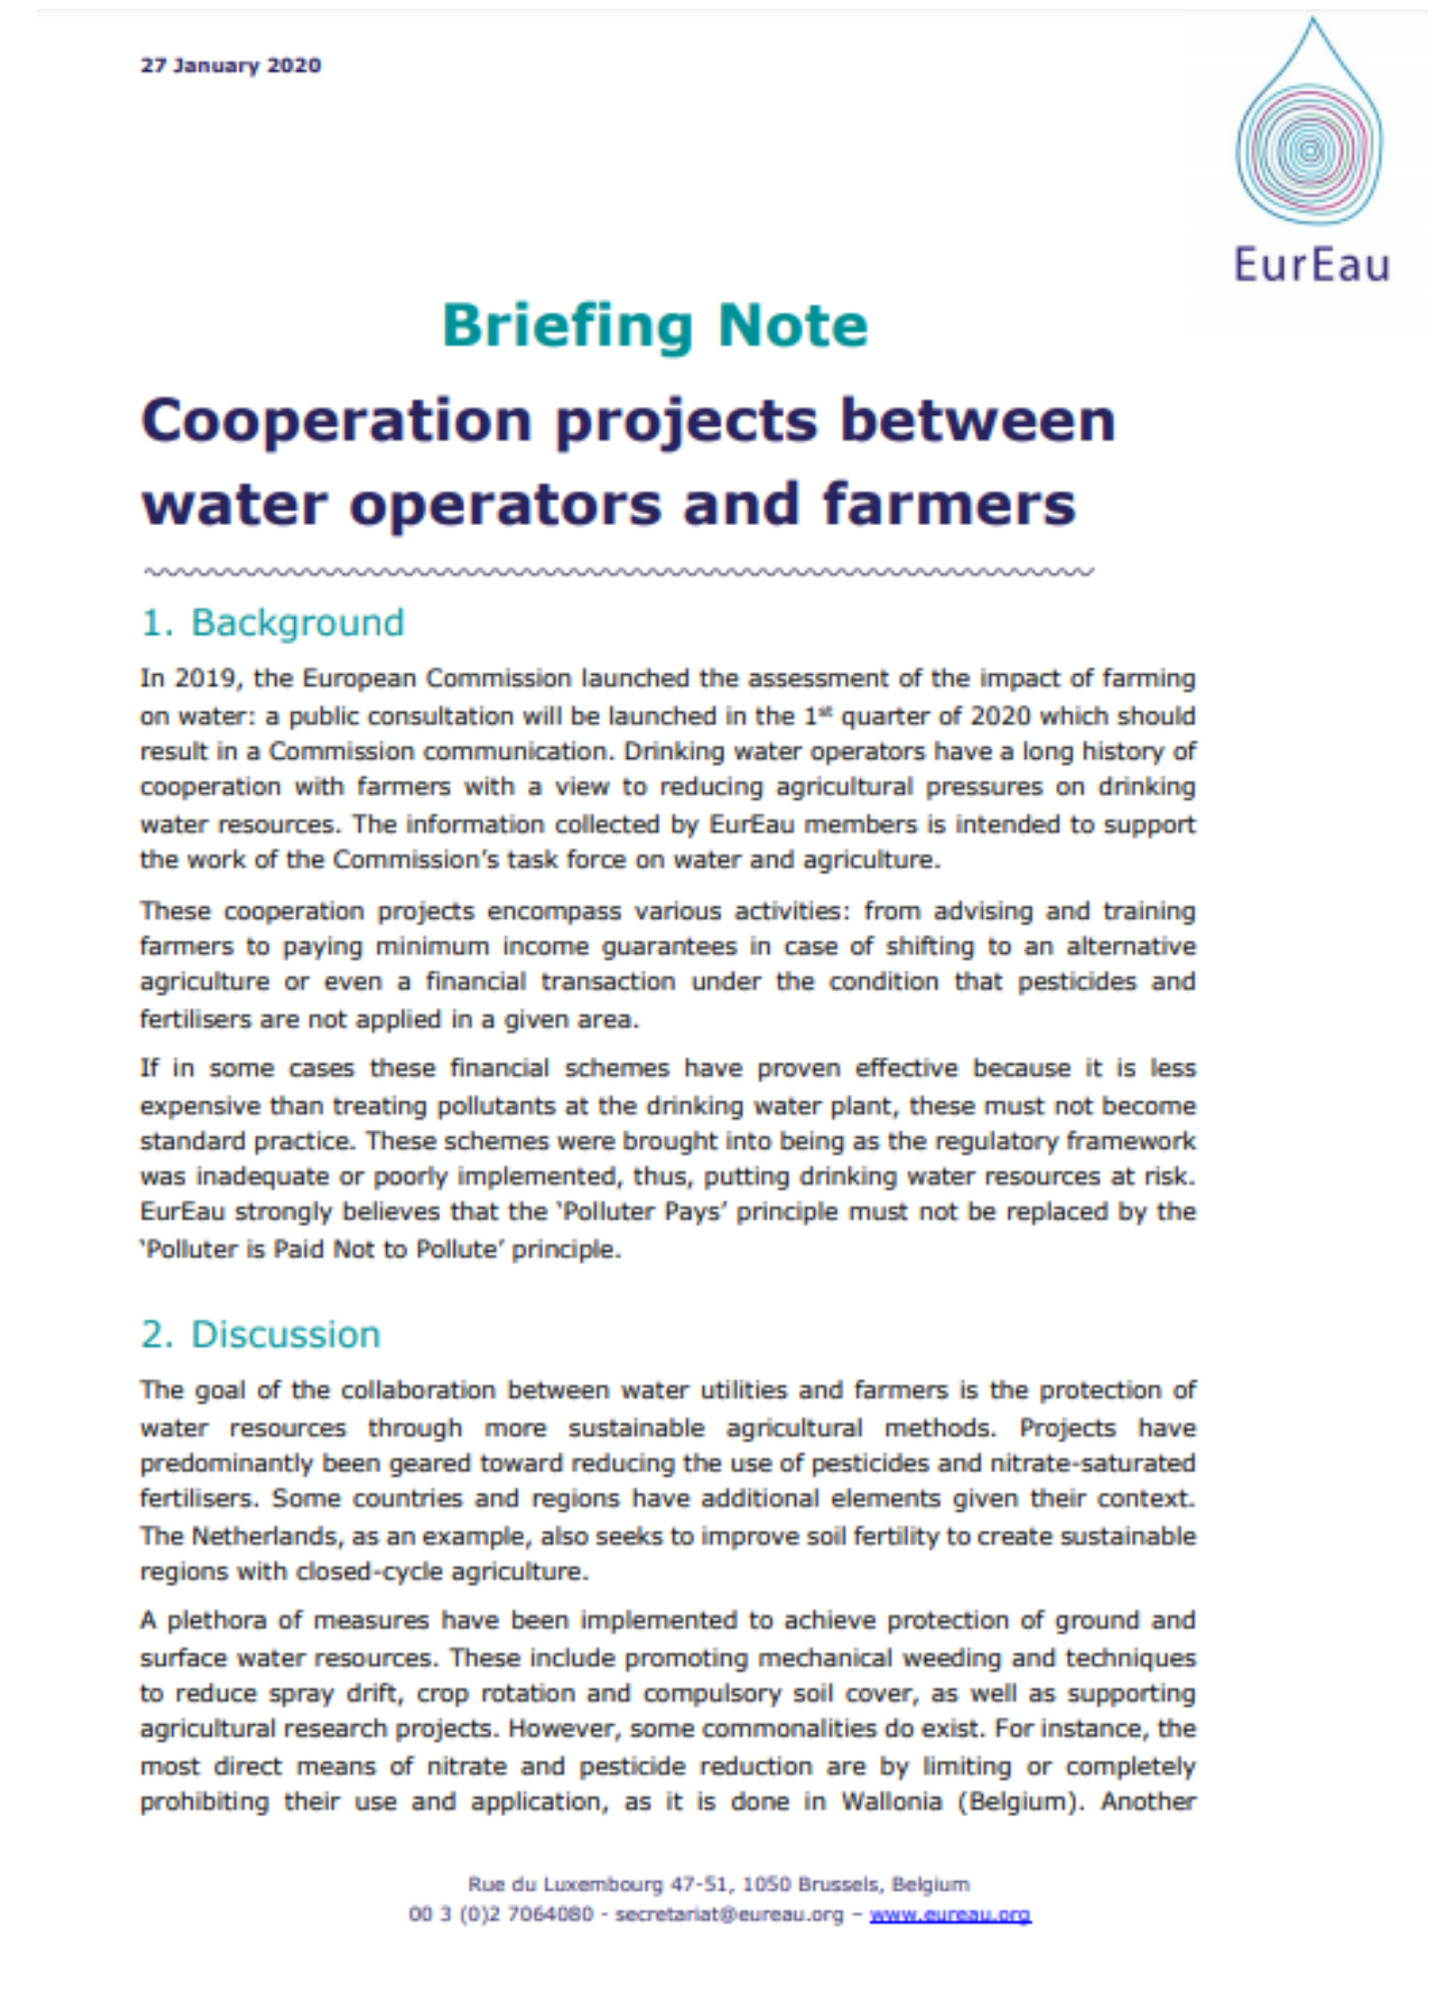 Briefing note on cooperation projects between water operators and farmers